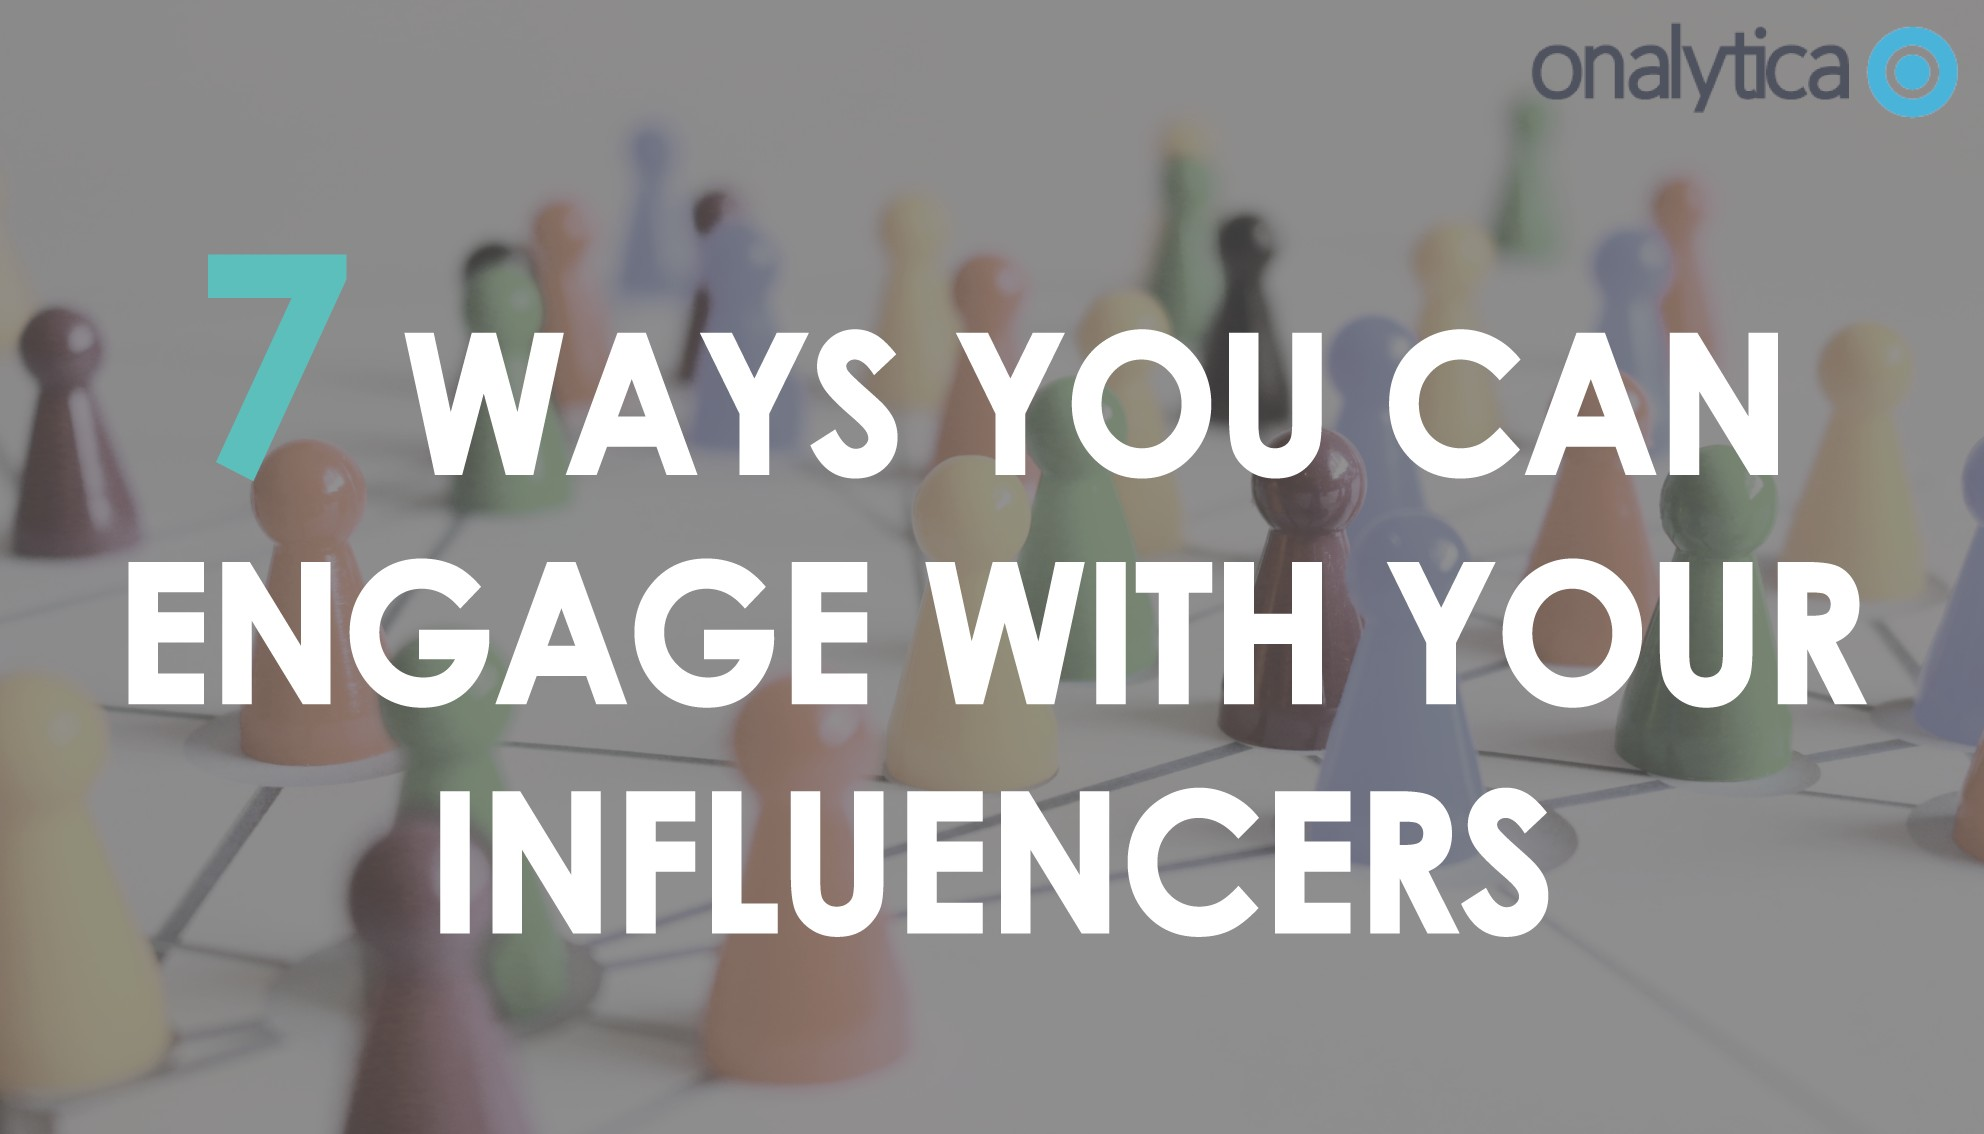 Onalytica 7-ways-you-can-engage-with-your-influencers-header